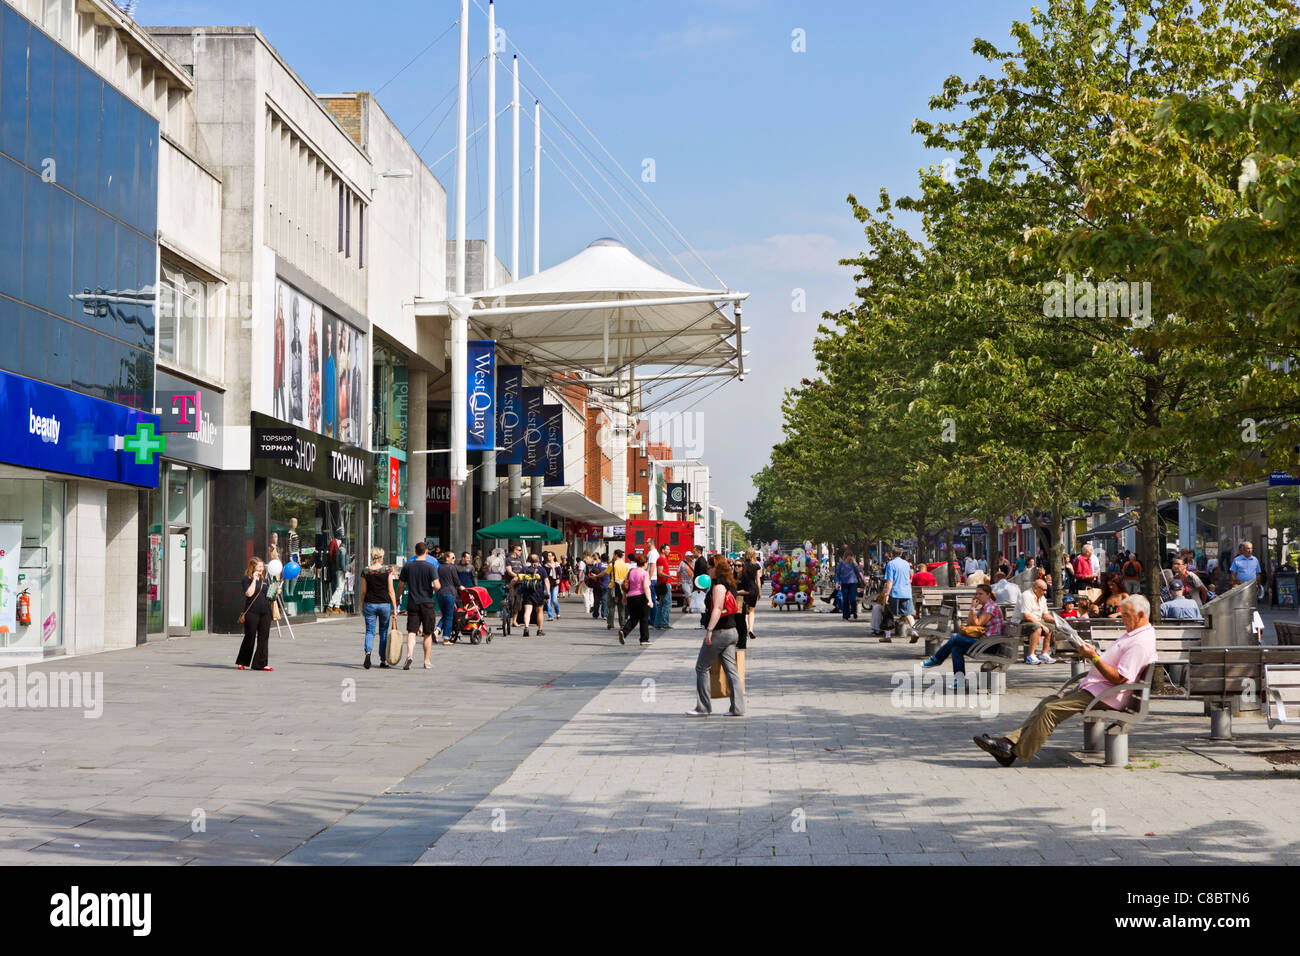 Shops in the main shopping area, Above Bar Street on the QEII Mile, Southampton, Hampshire, England, UK - Stock Image